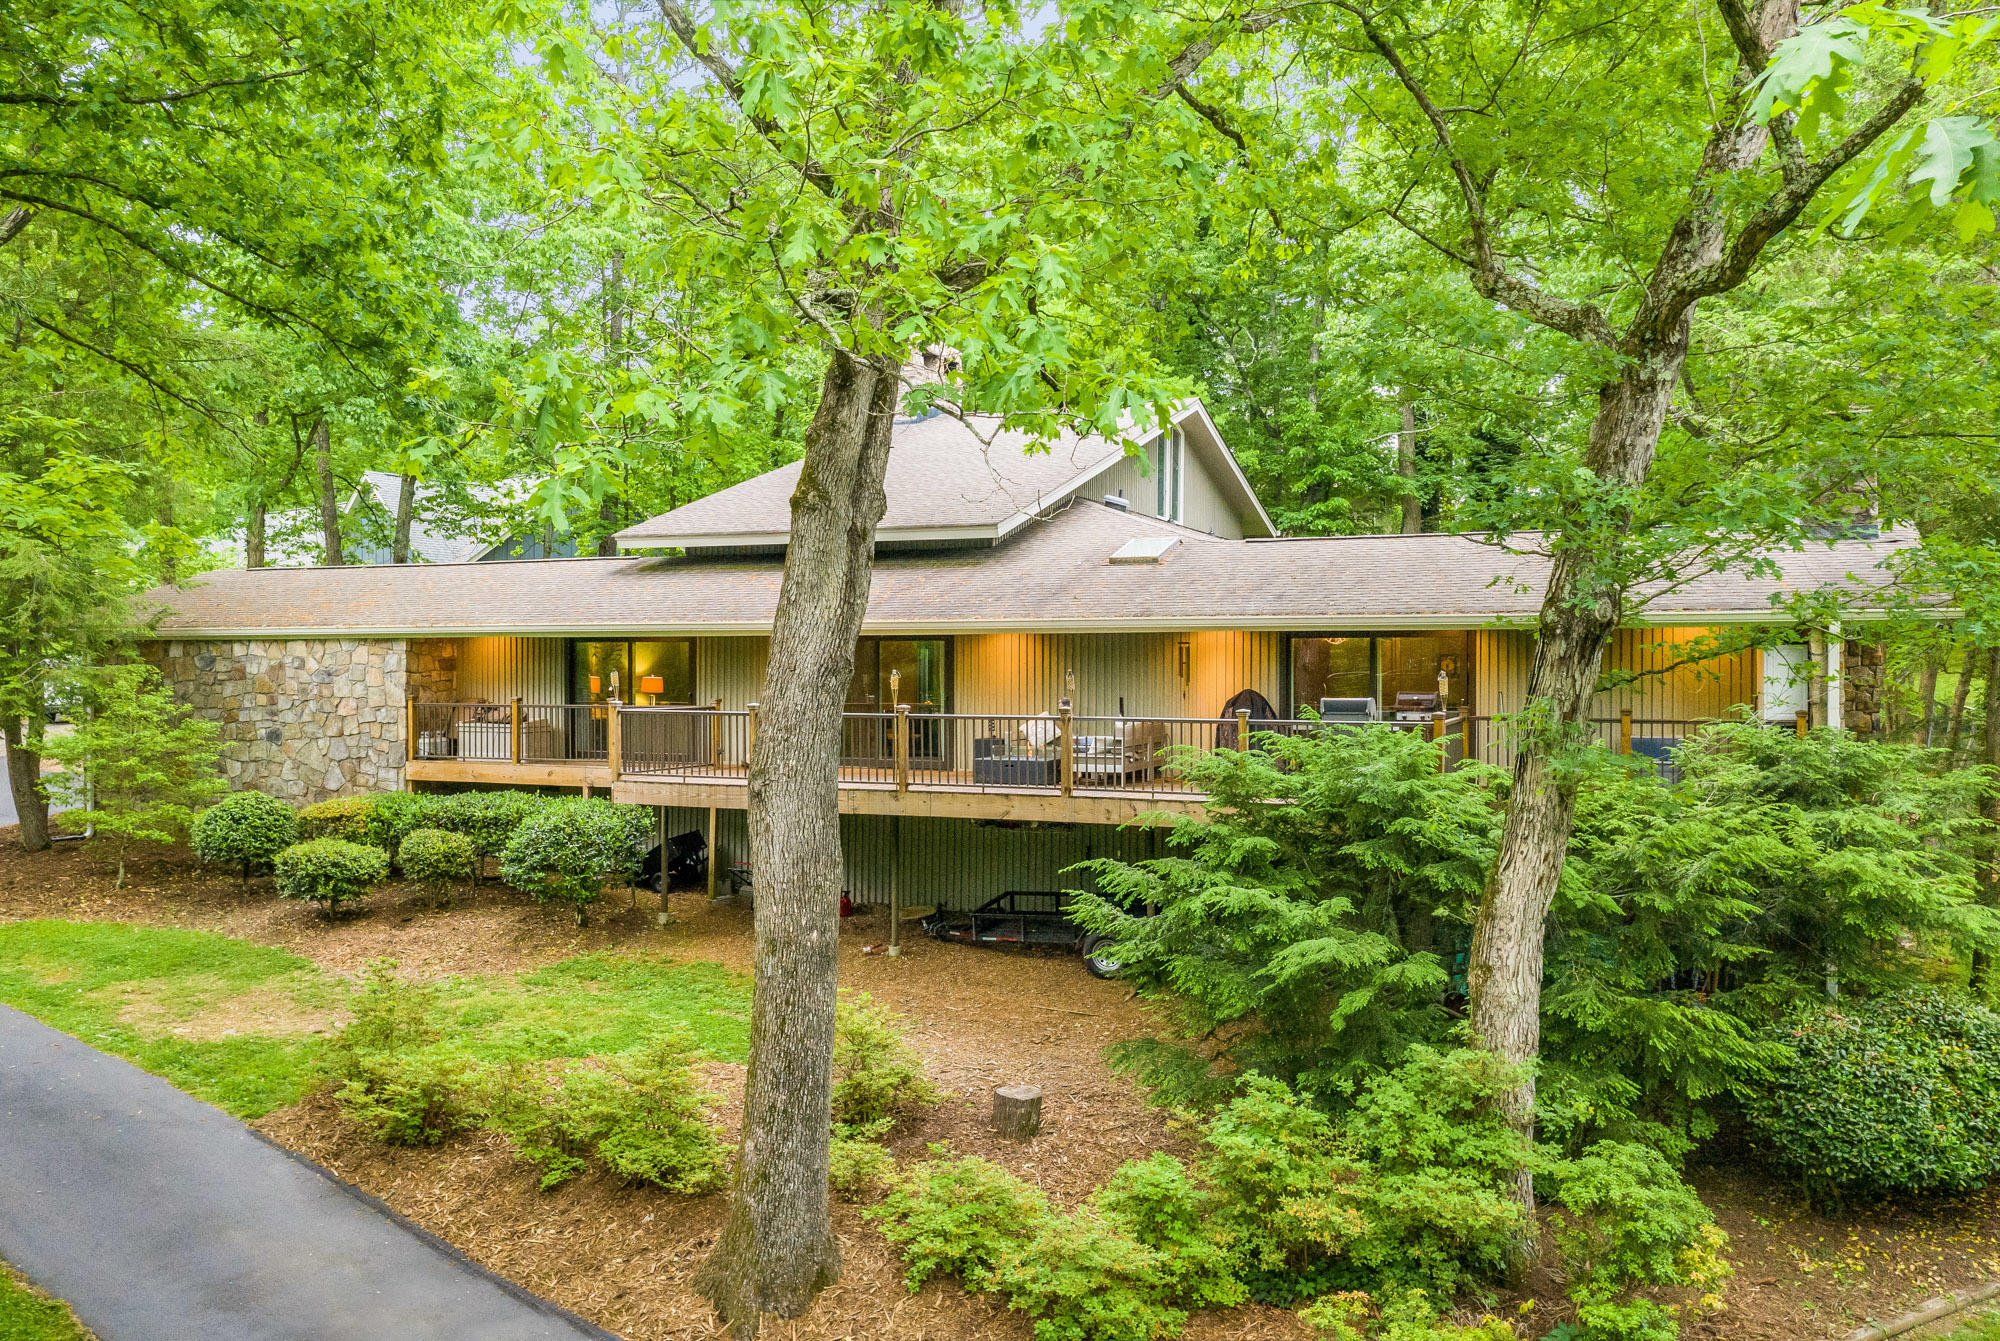 416 Fern Tr, Signal Mountain, TN 37377